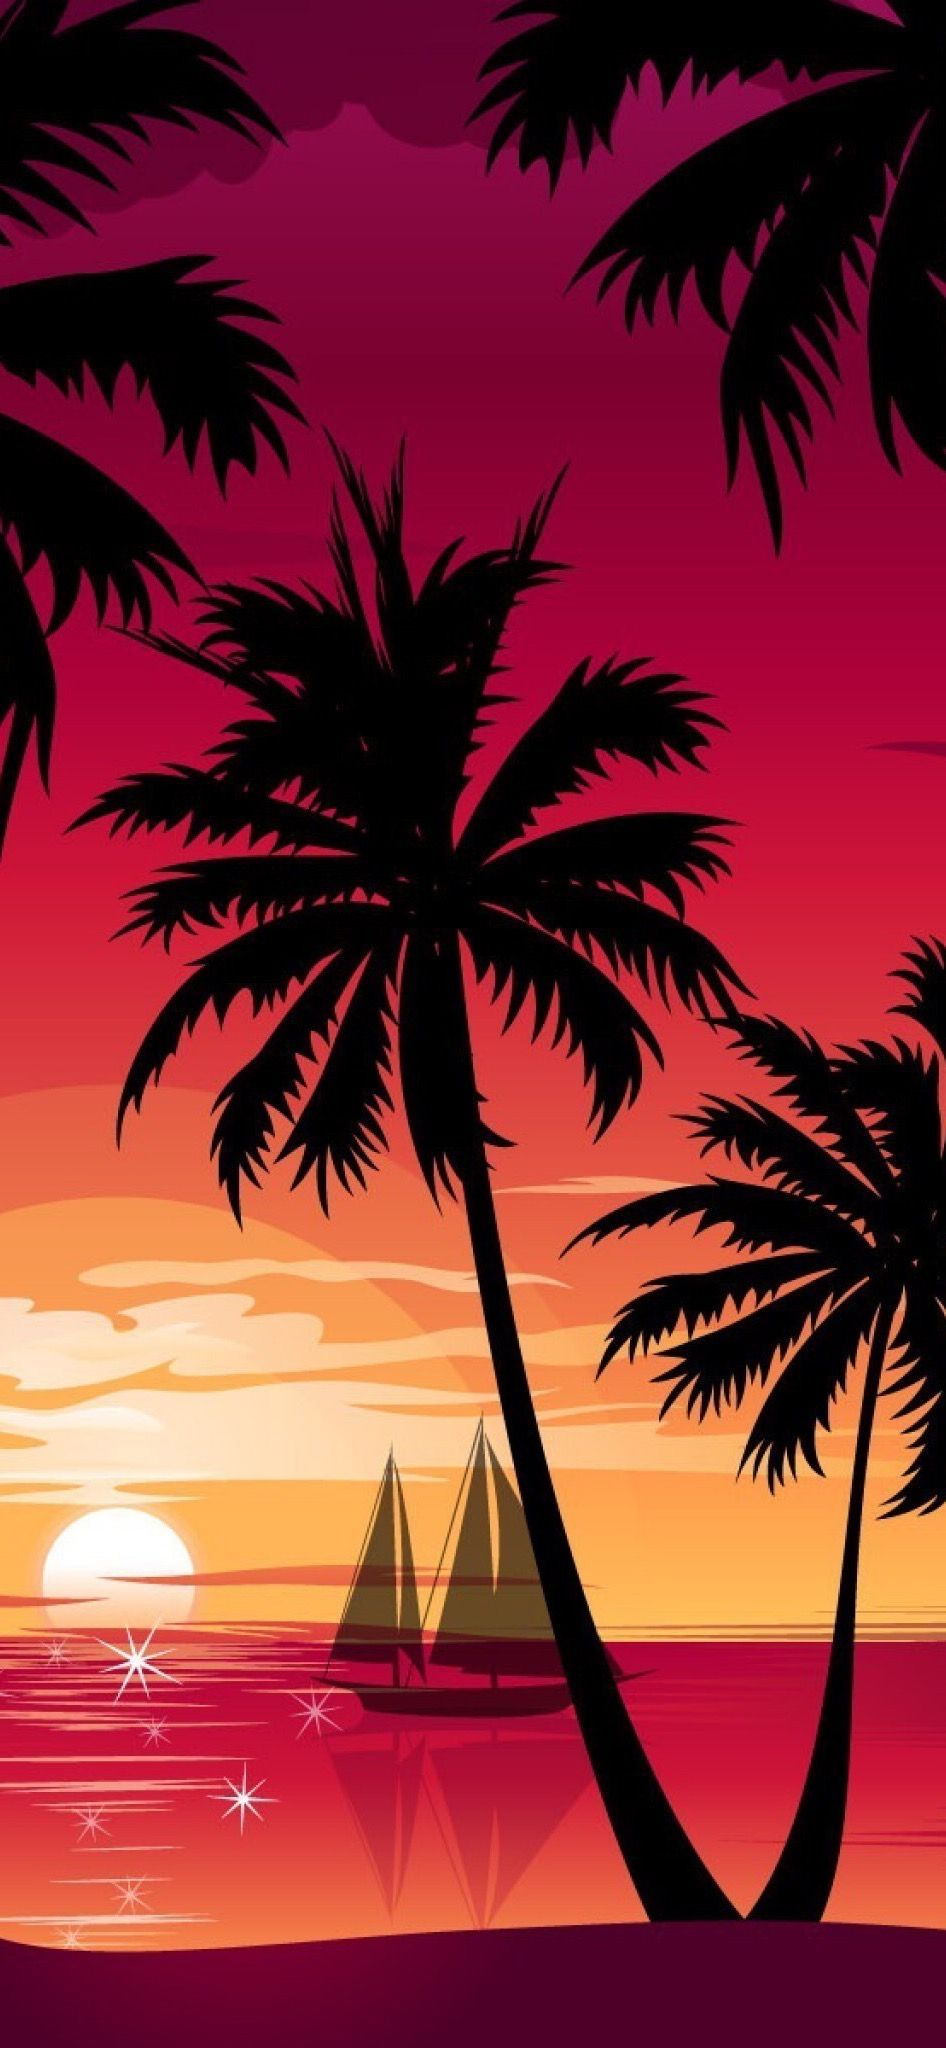 Pin By 伸幸 亀田 On 壁紙 In Sunset Wallpaper Surf Painting Beach Wallpaper